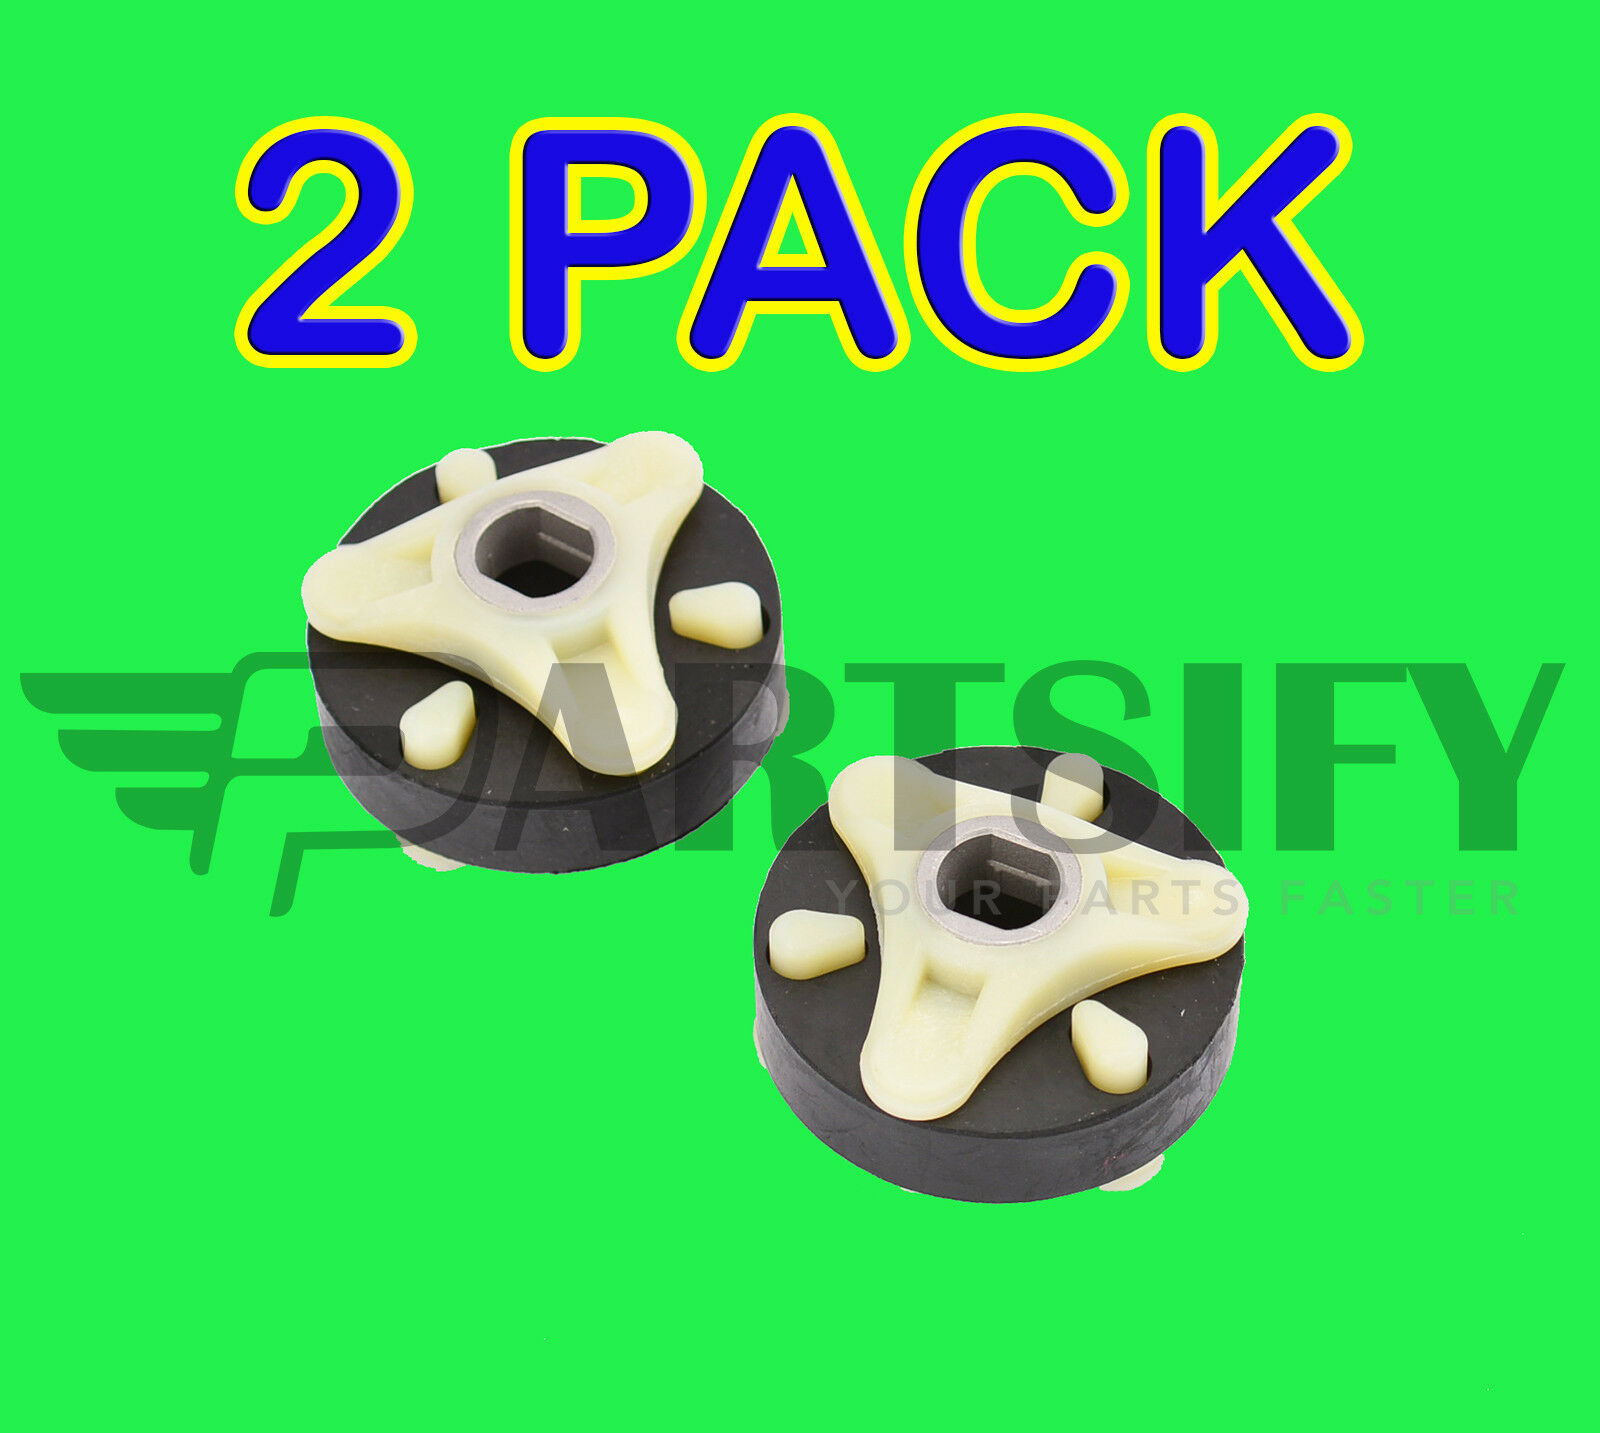 2 Pack New 285753a 285753 Washer Heavy Duty Motor Coupling Fits Whirlpool Model Lsq9500lq0 1 Of See More